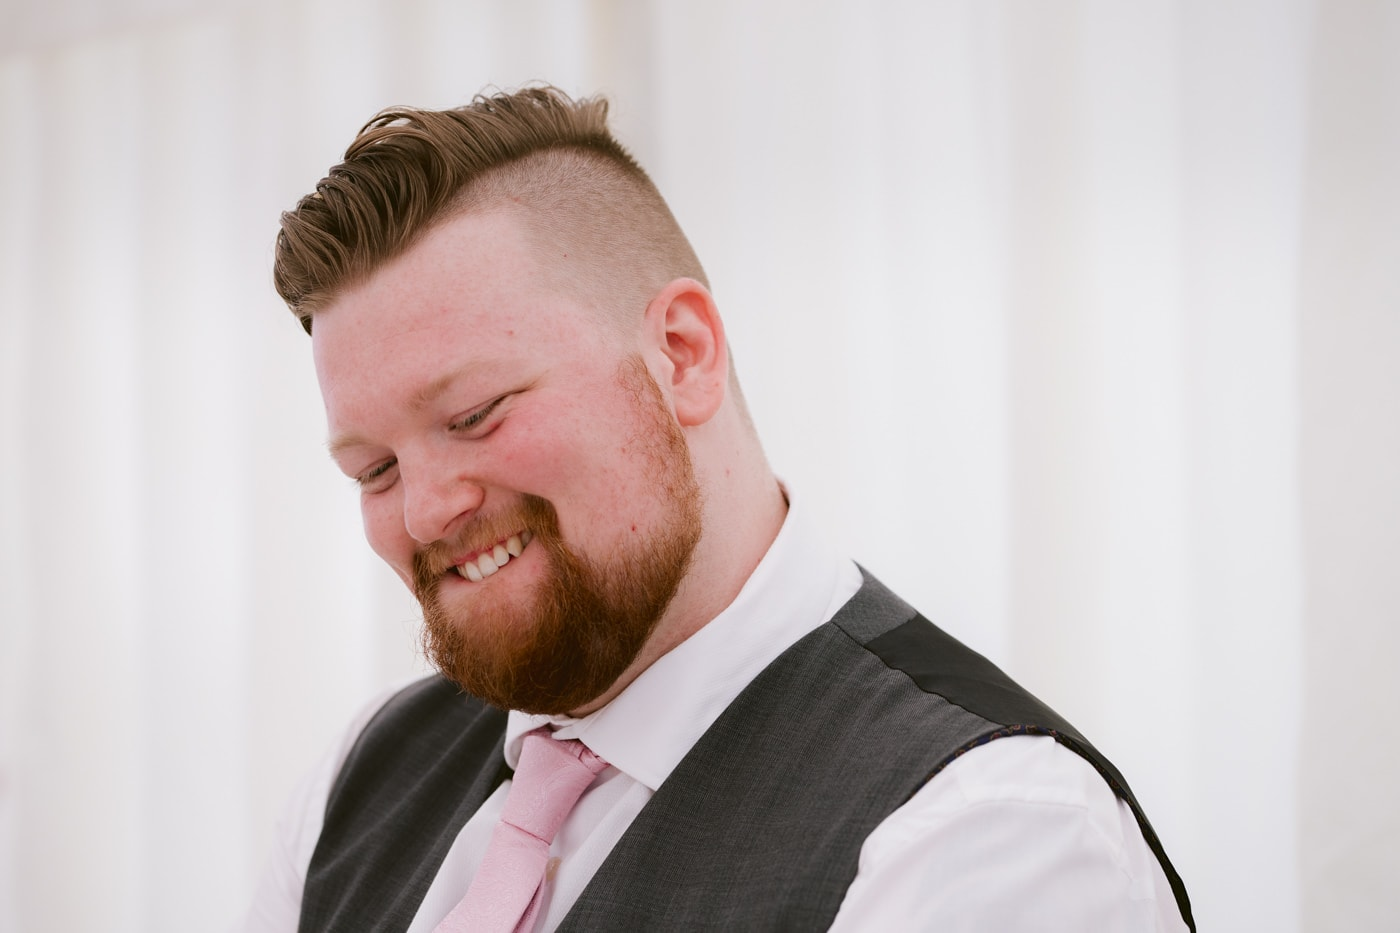 Groom Smiling at Wedding Speeches Single Portrait